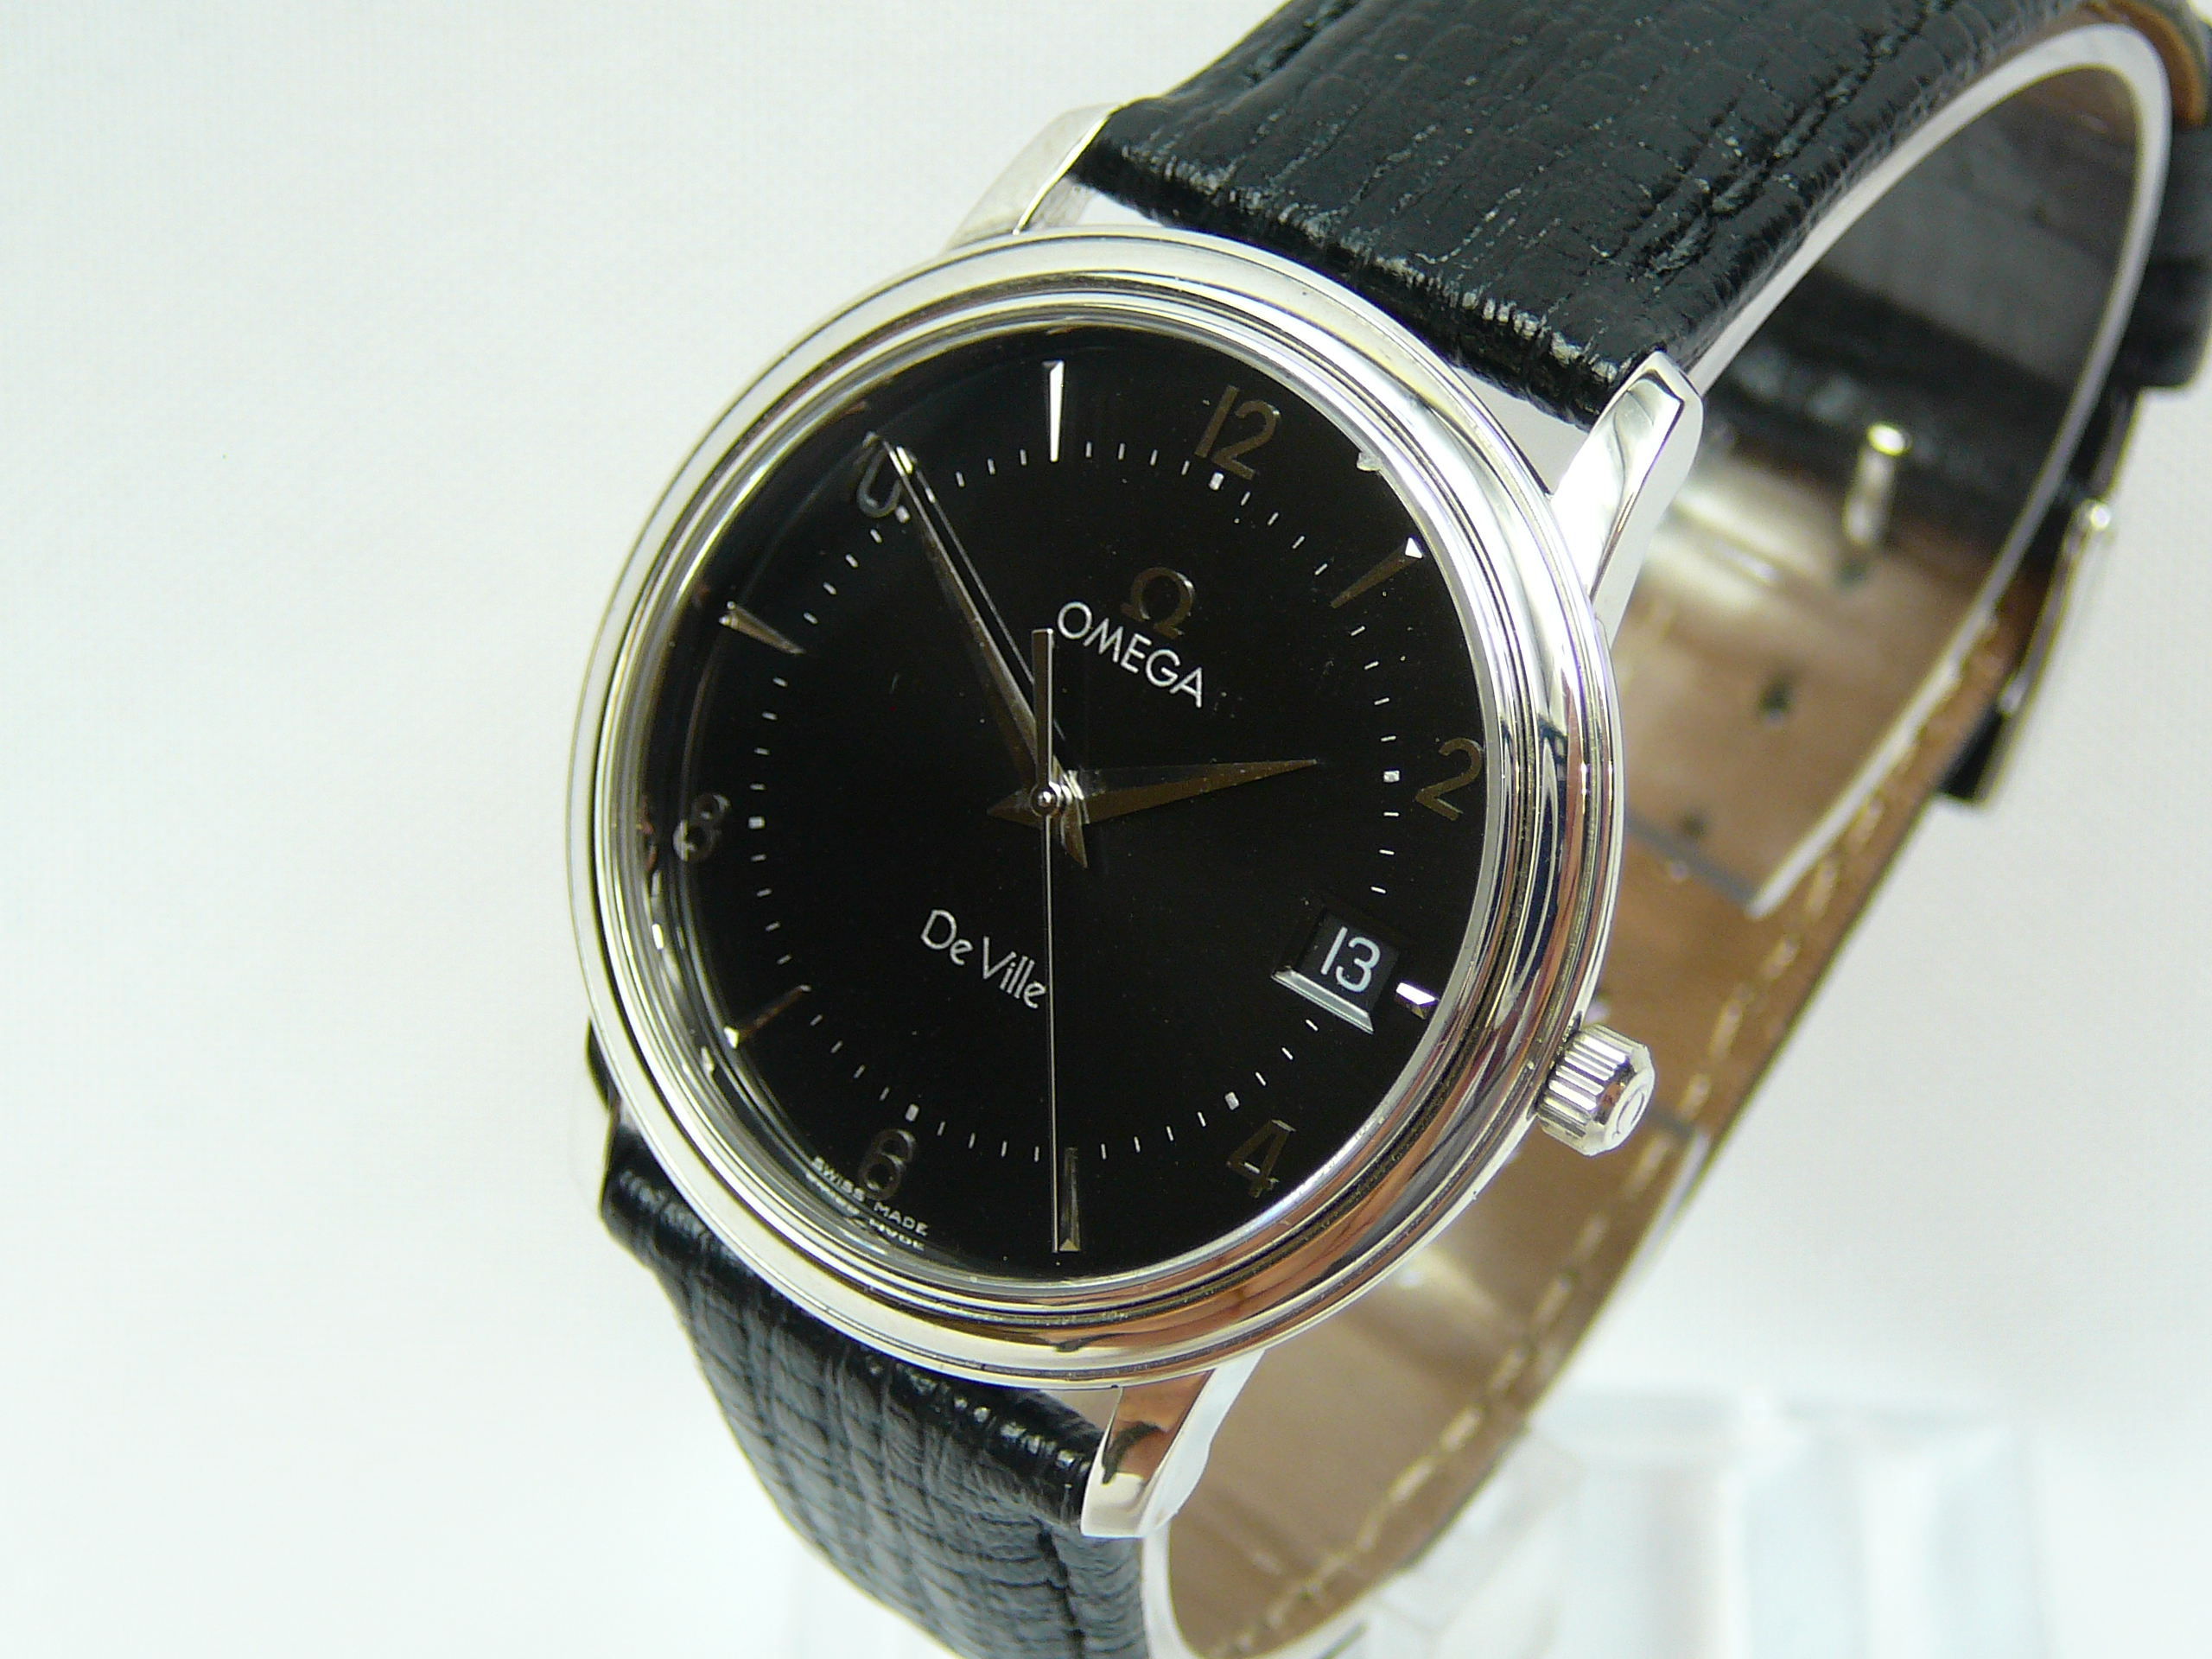 Gents Omega Wrist Watch - Image 2 of 3